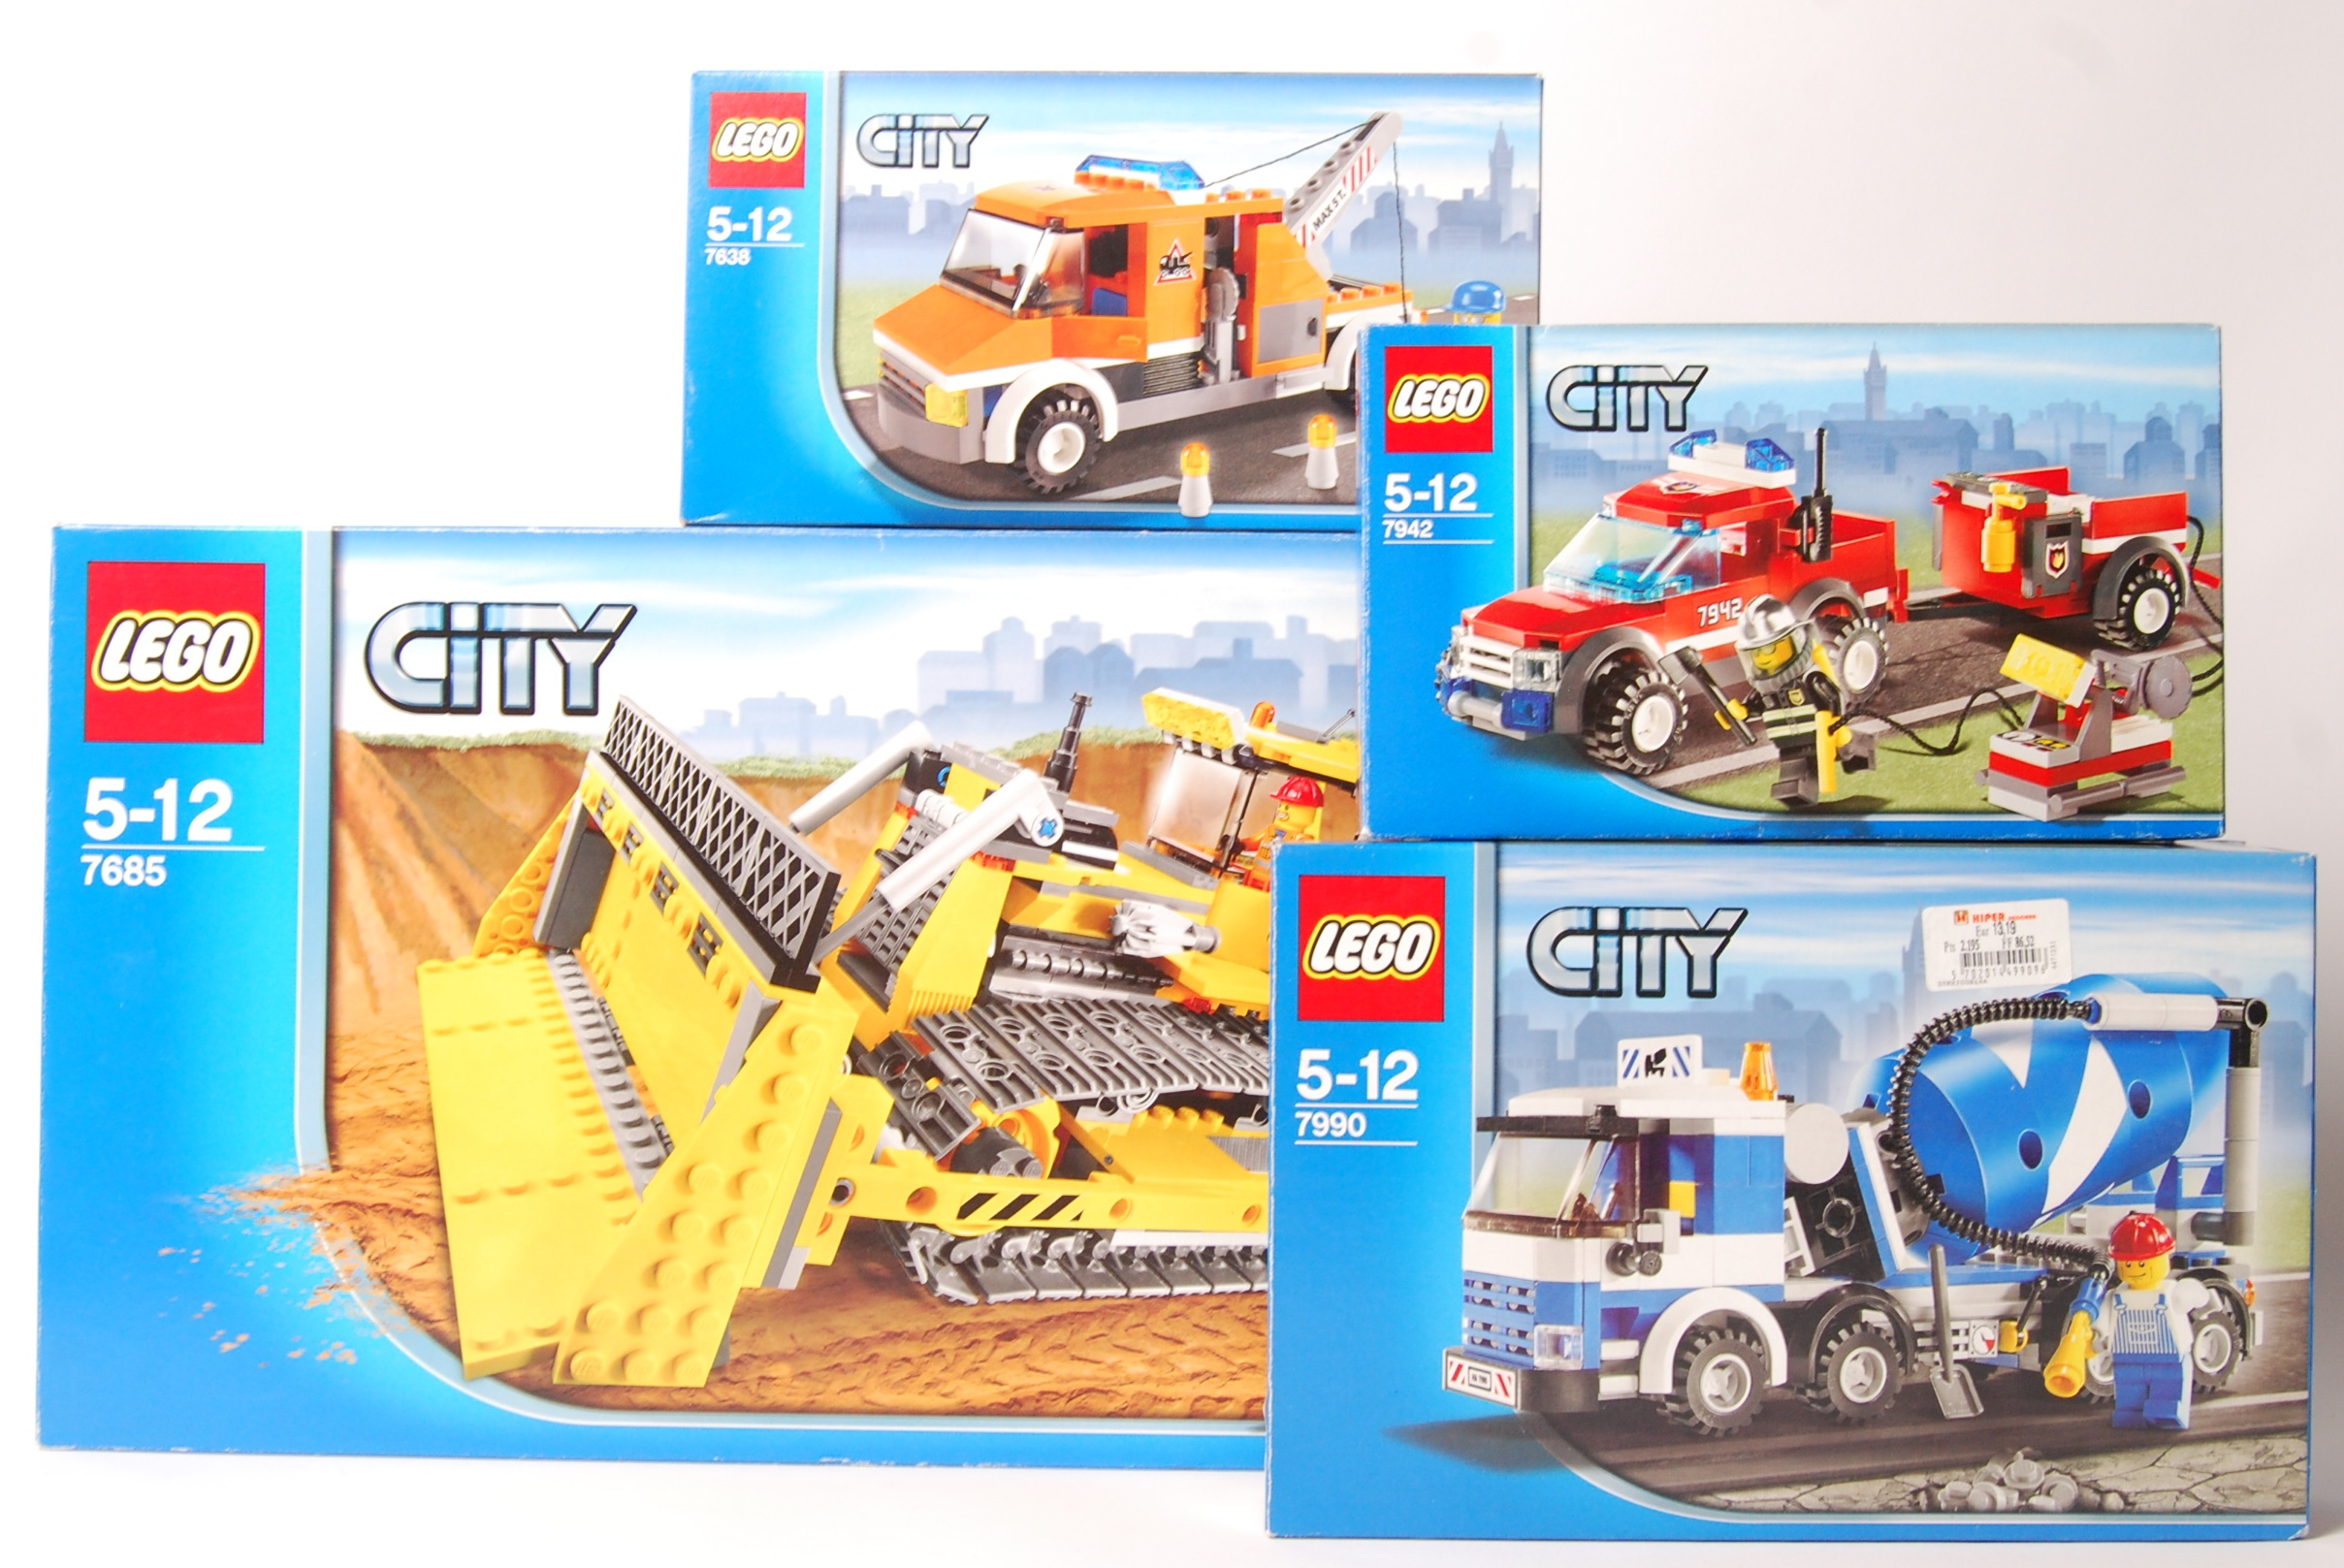 Lot 14 - LEGO CITY SERIES SET NO'S 7685, 7638, 7942, 7990